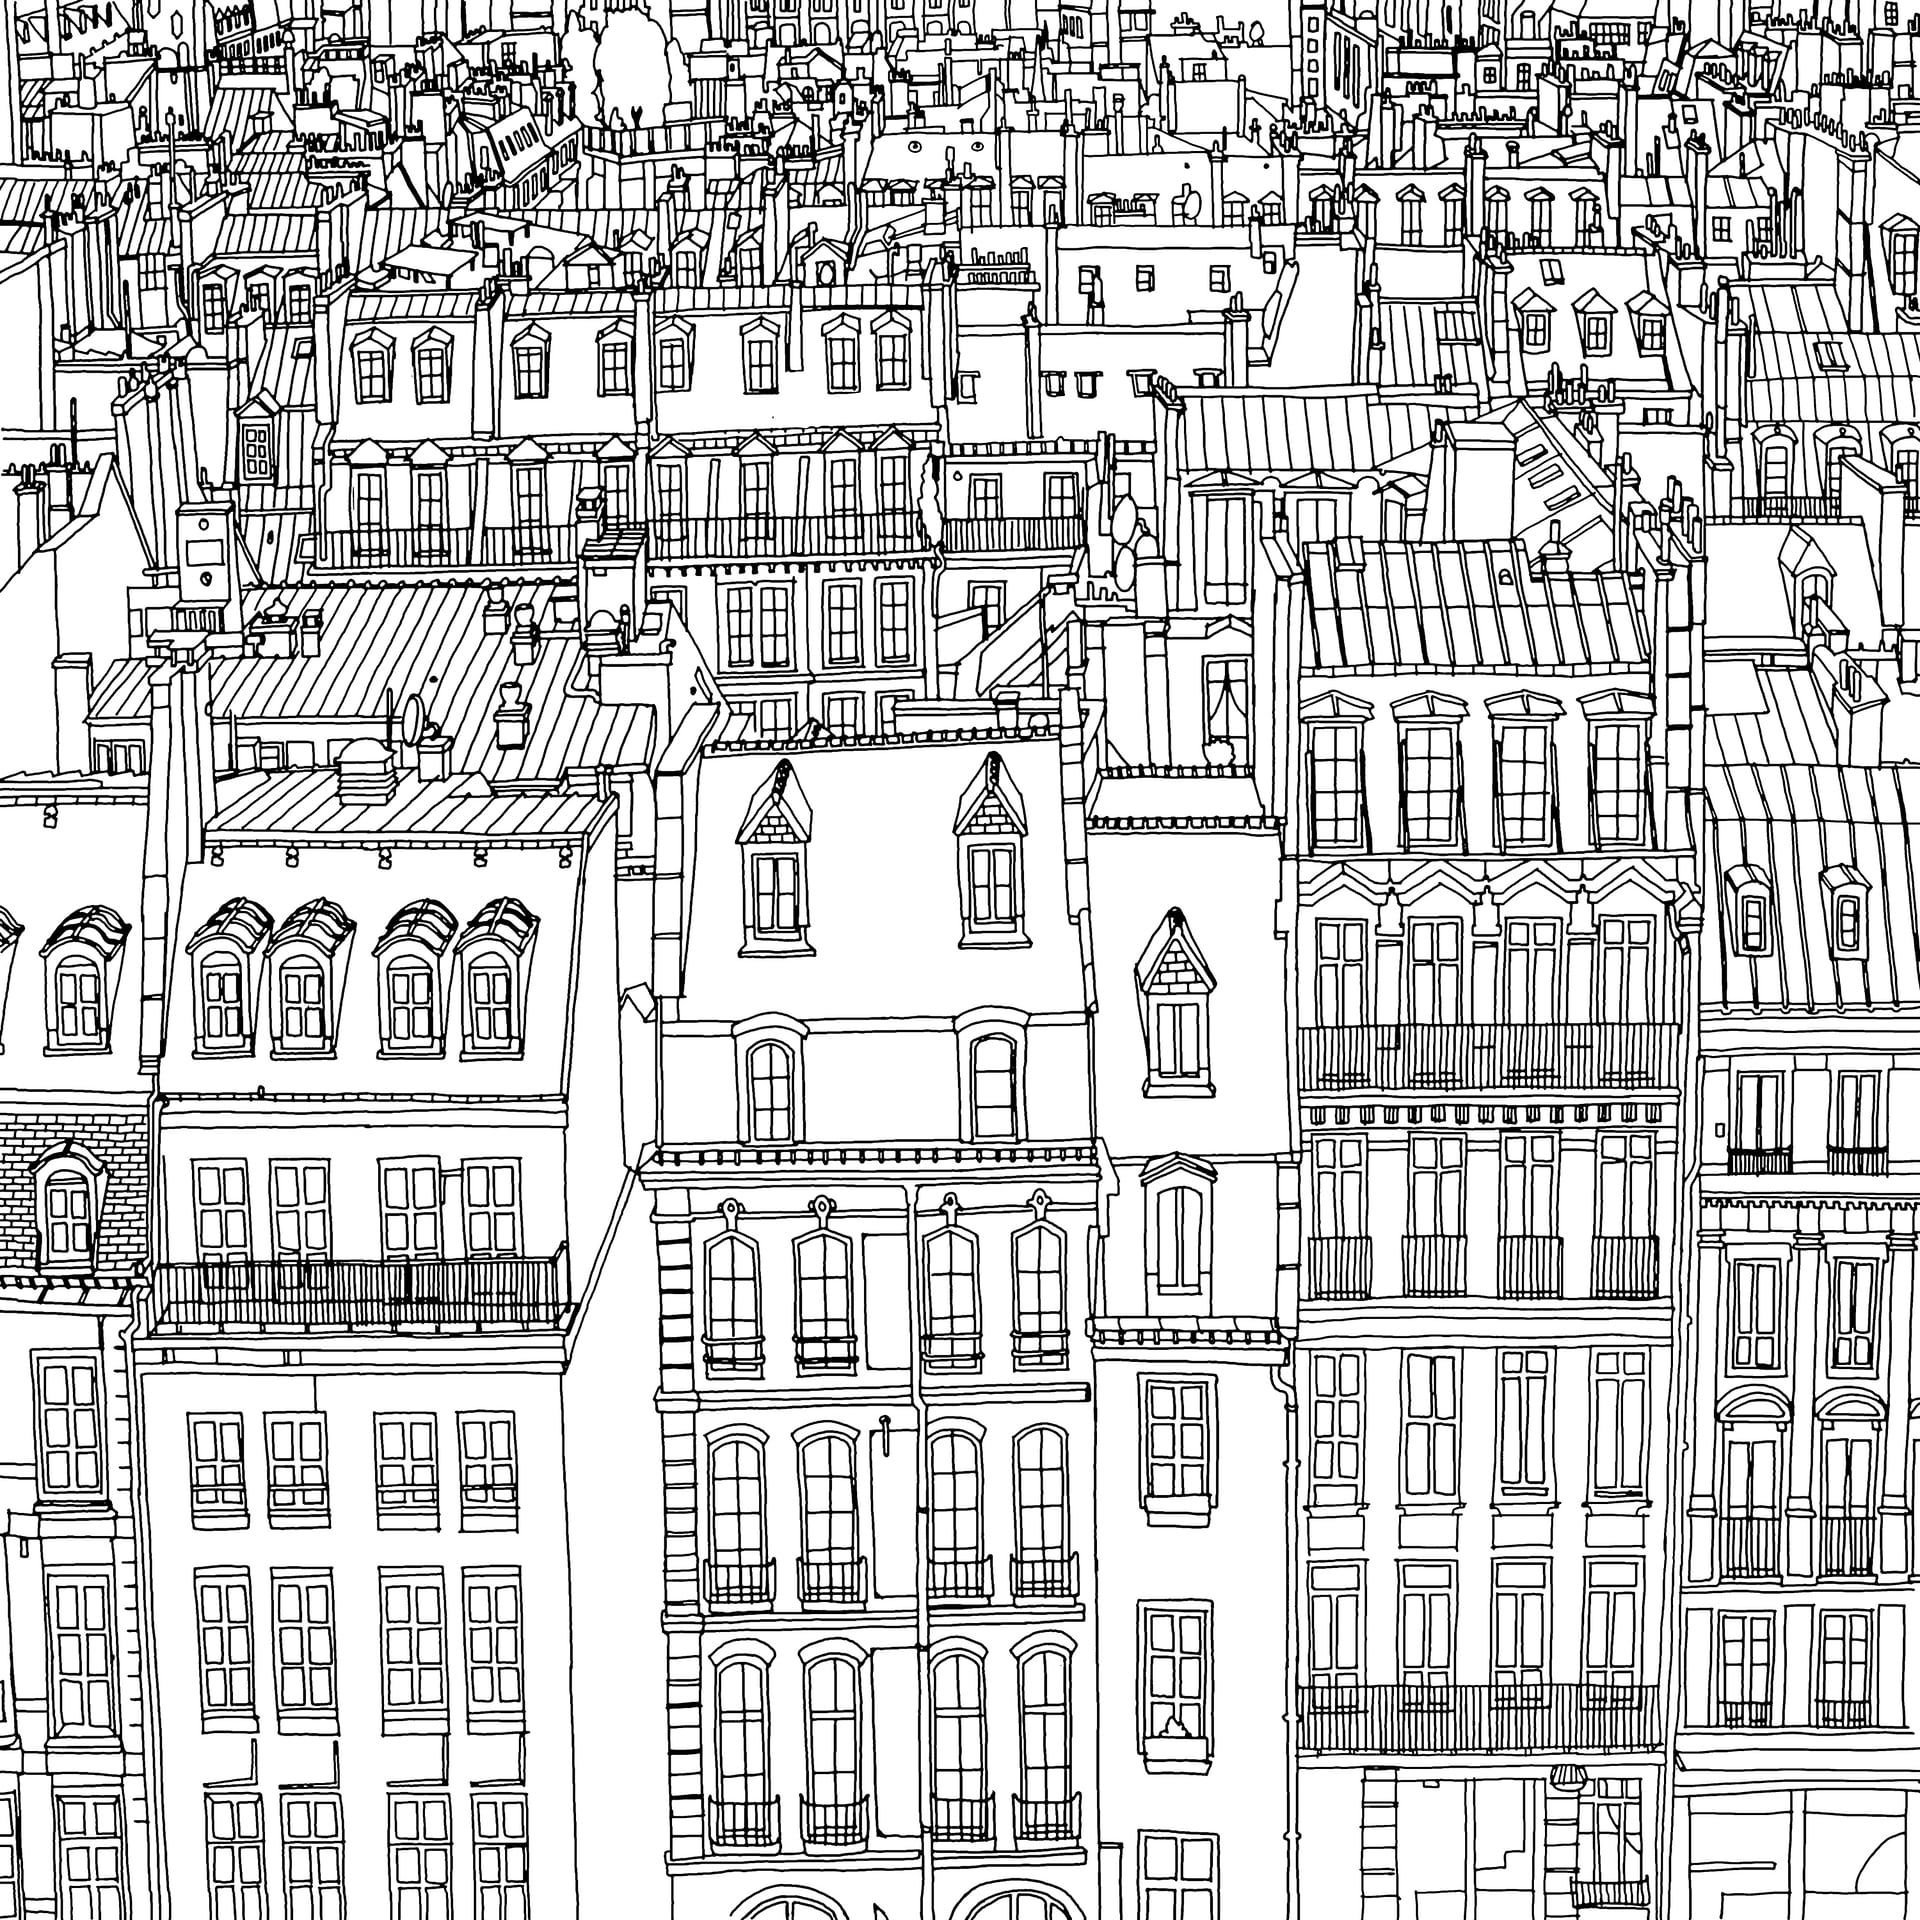 Canadian Artist Steve McDonalds Colouring Book Fantastic Cities Is Full Of Painstakingly Accurate Perspectives Urban